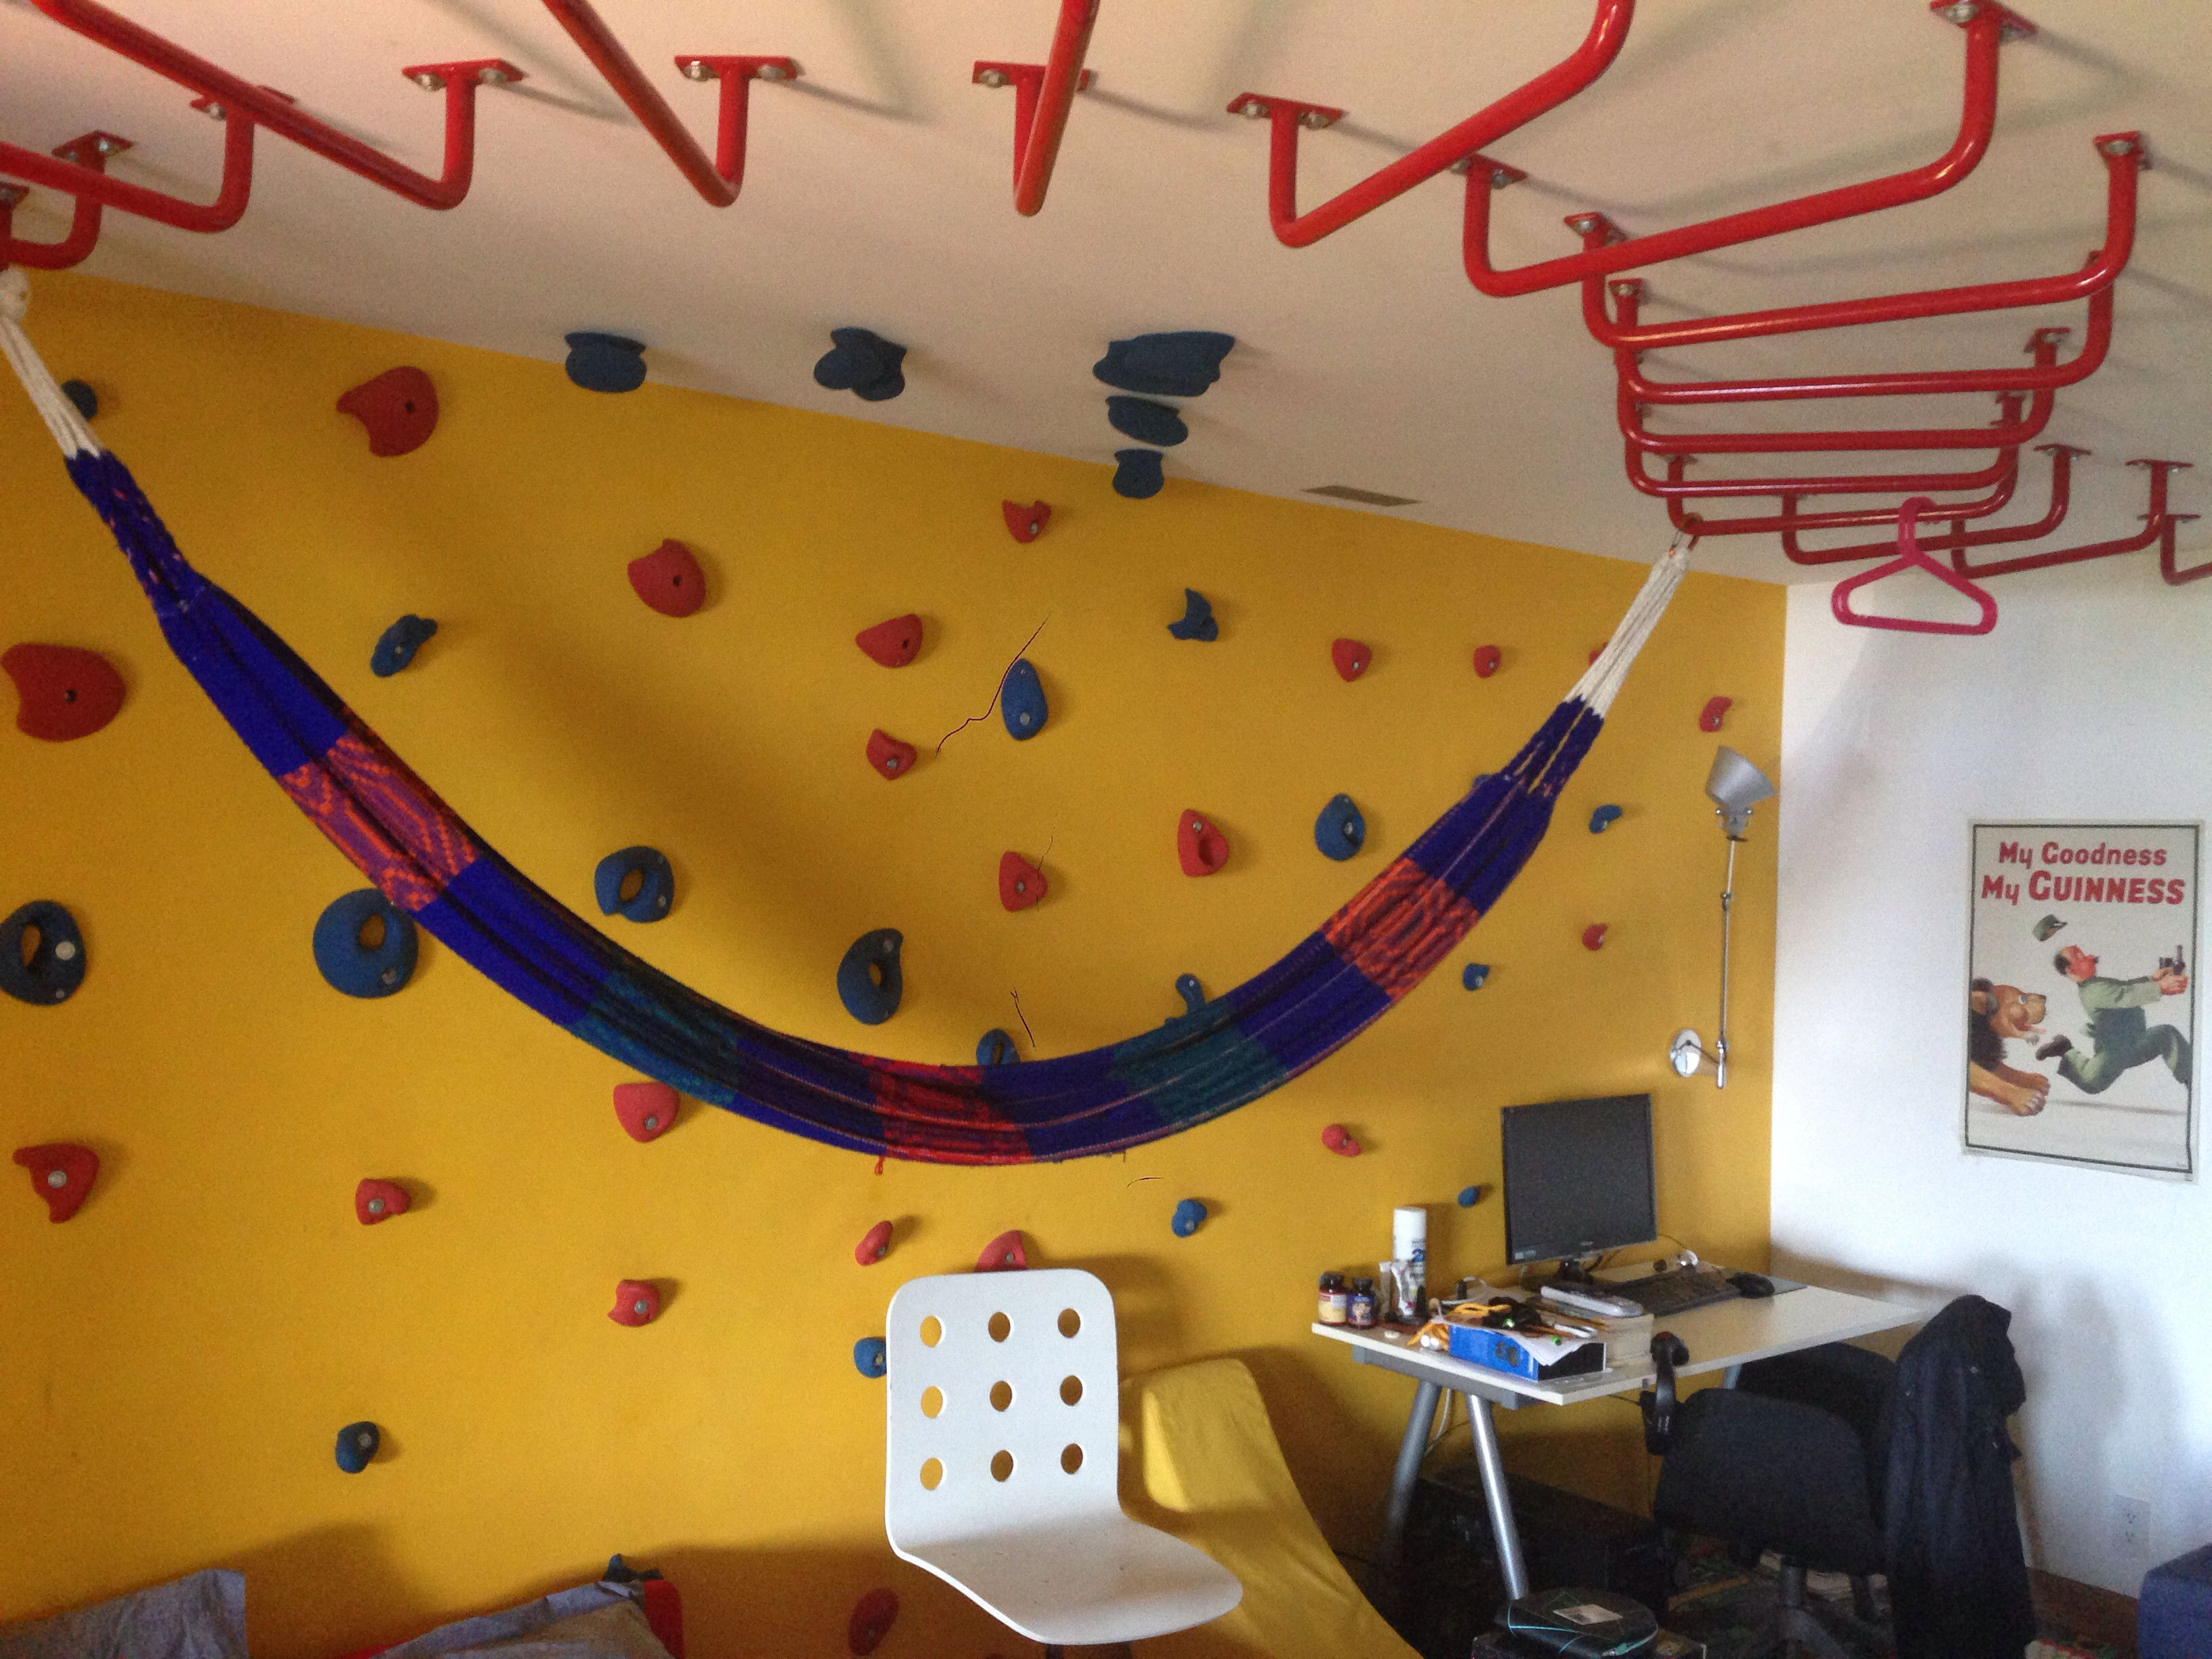 Kids Bedroom Hammock so my friend has monkey bars and a hammock in his room | monkey